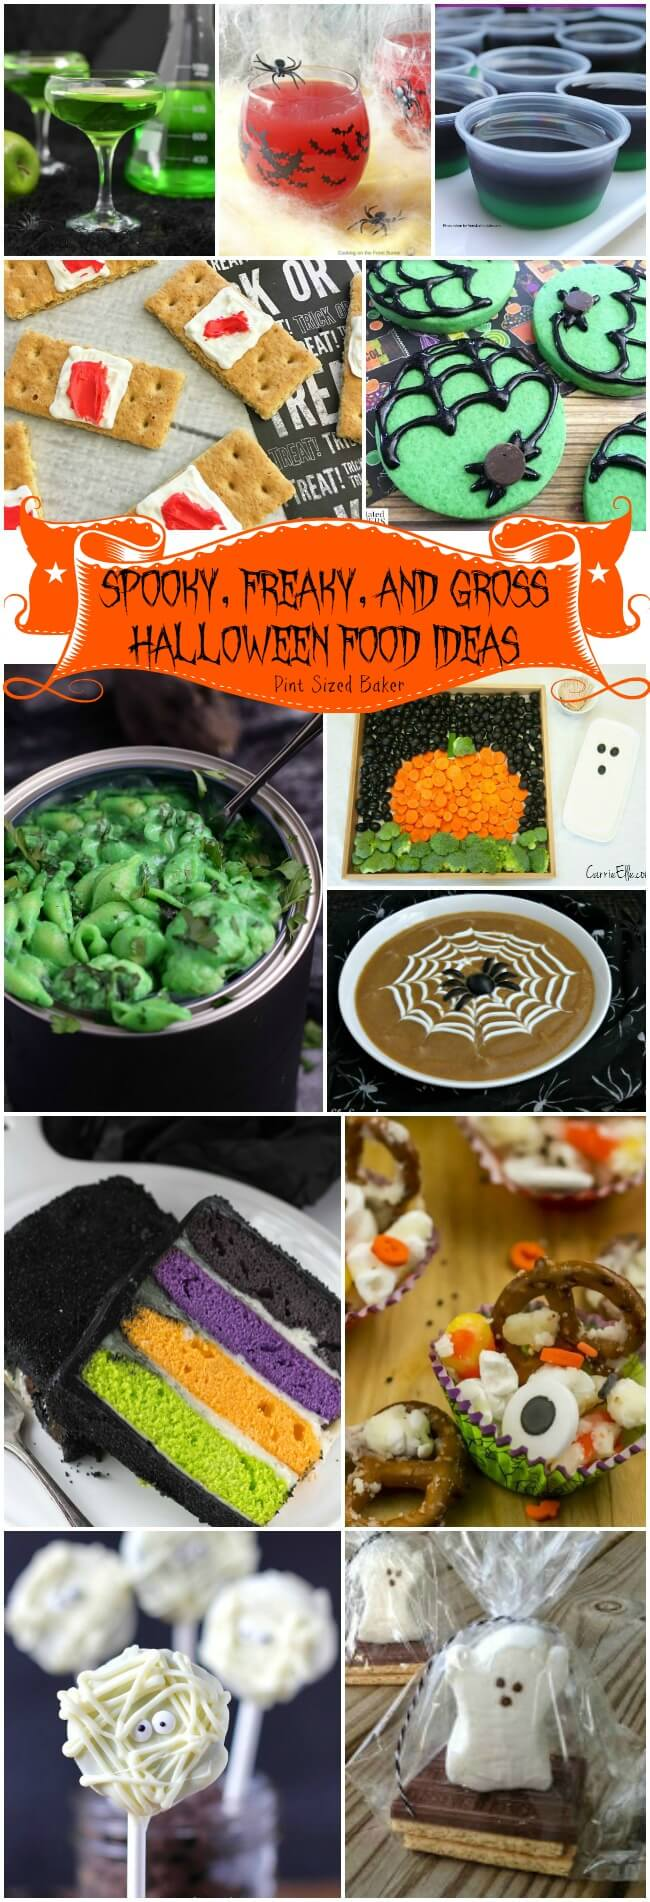 Spooky Freaky And Gross Halloween Food Ideas Pint